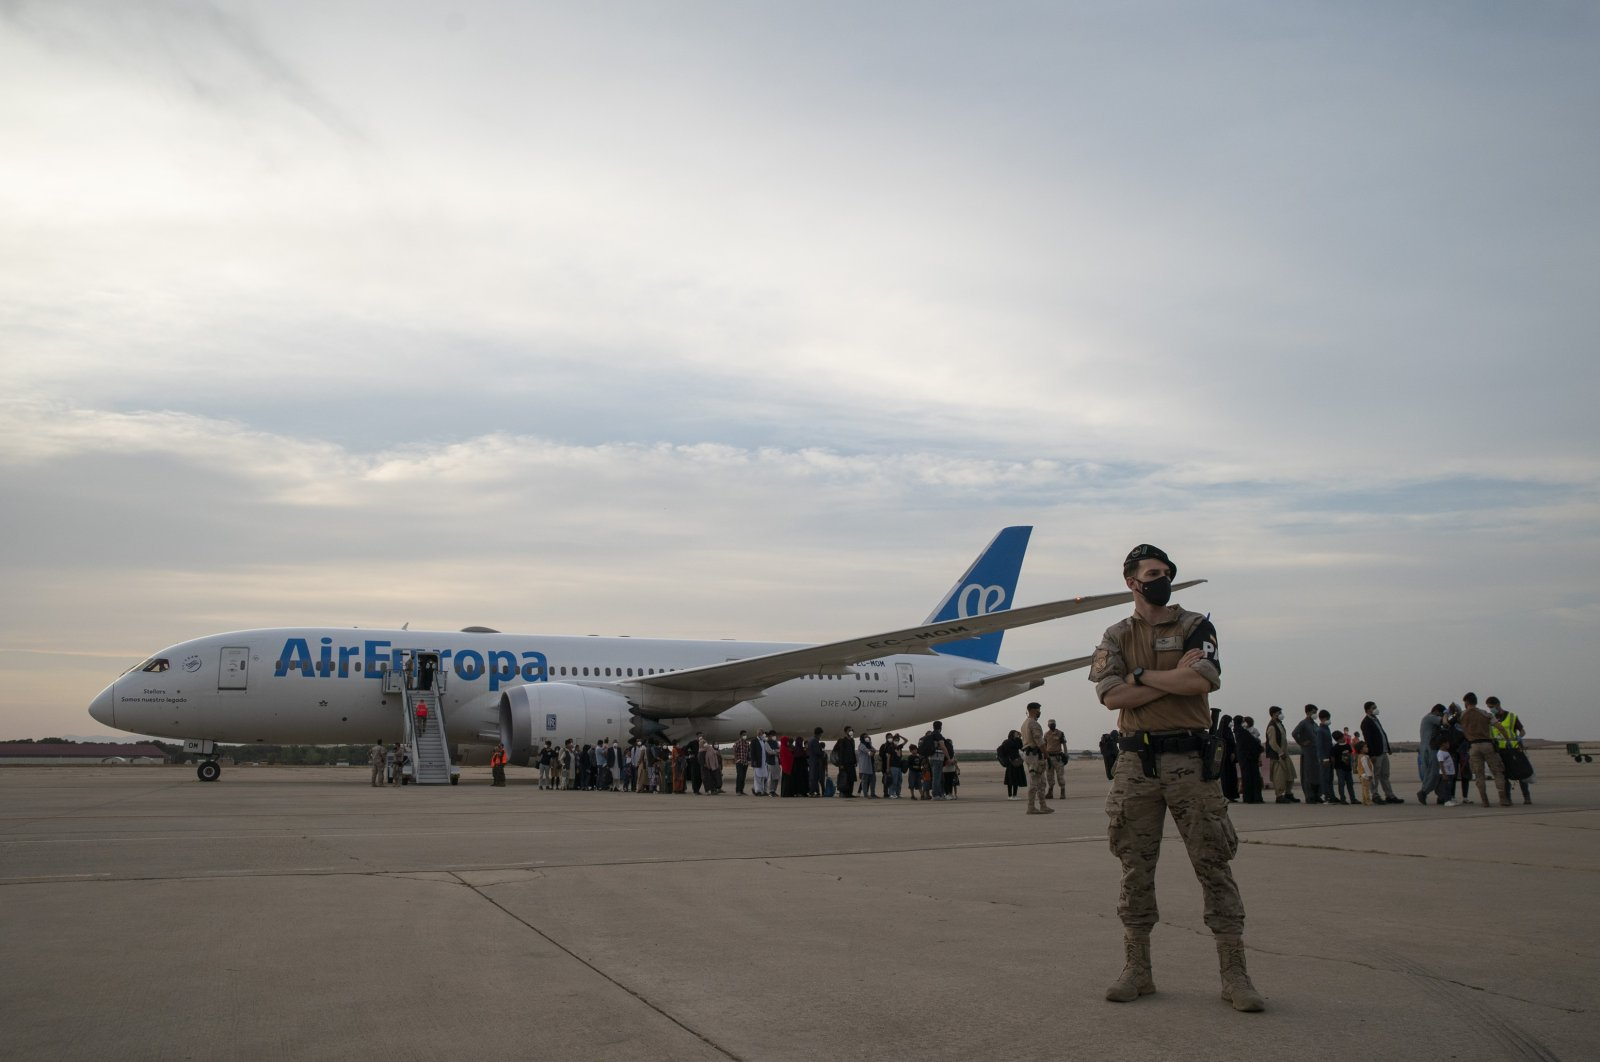 Afghans who were transported from Afghanistan, walk after disembarking a plane, at the Torrejon military base as part of the evacuation process in Madrid, Spain, Aug. 24, 2021. (AP Photo)